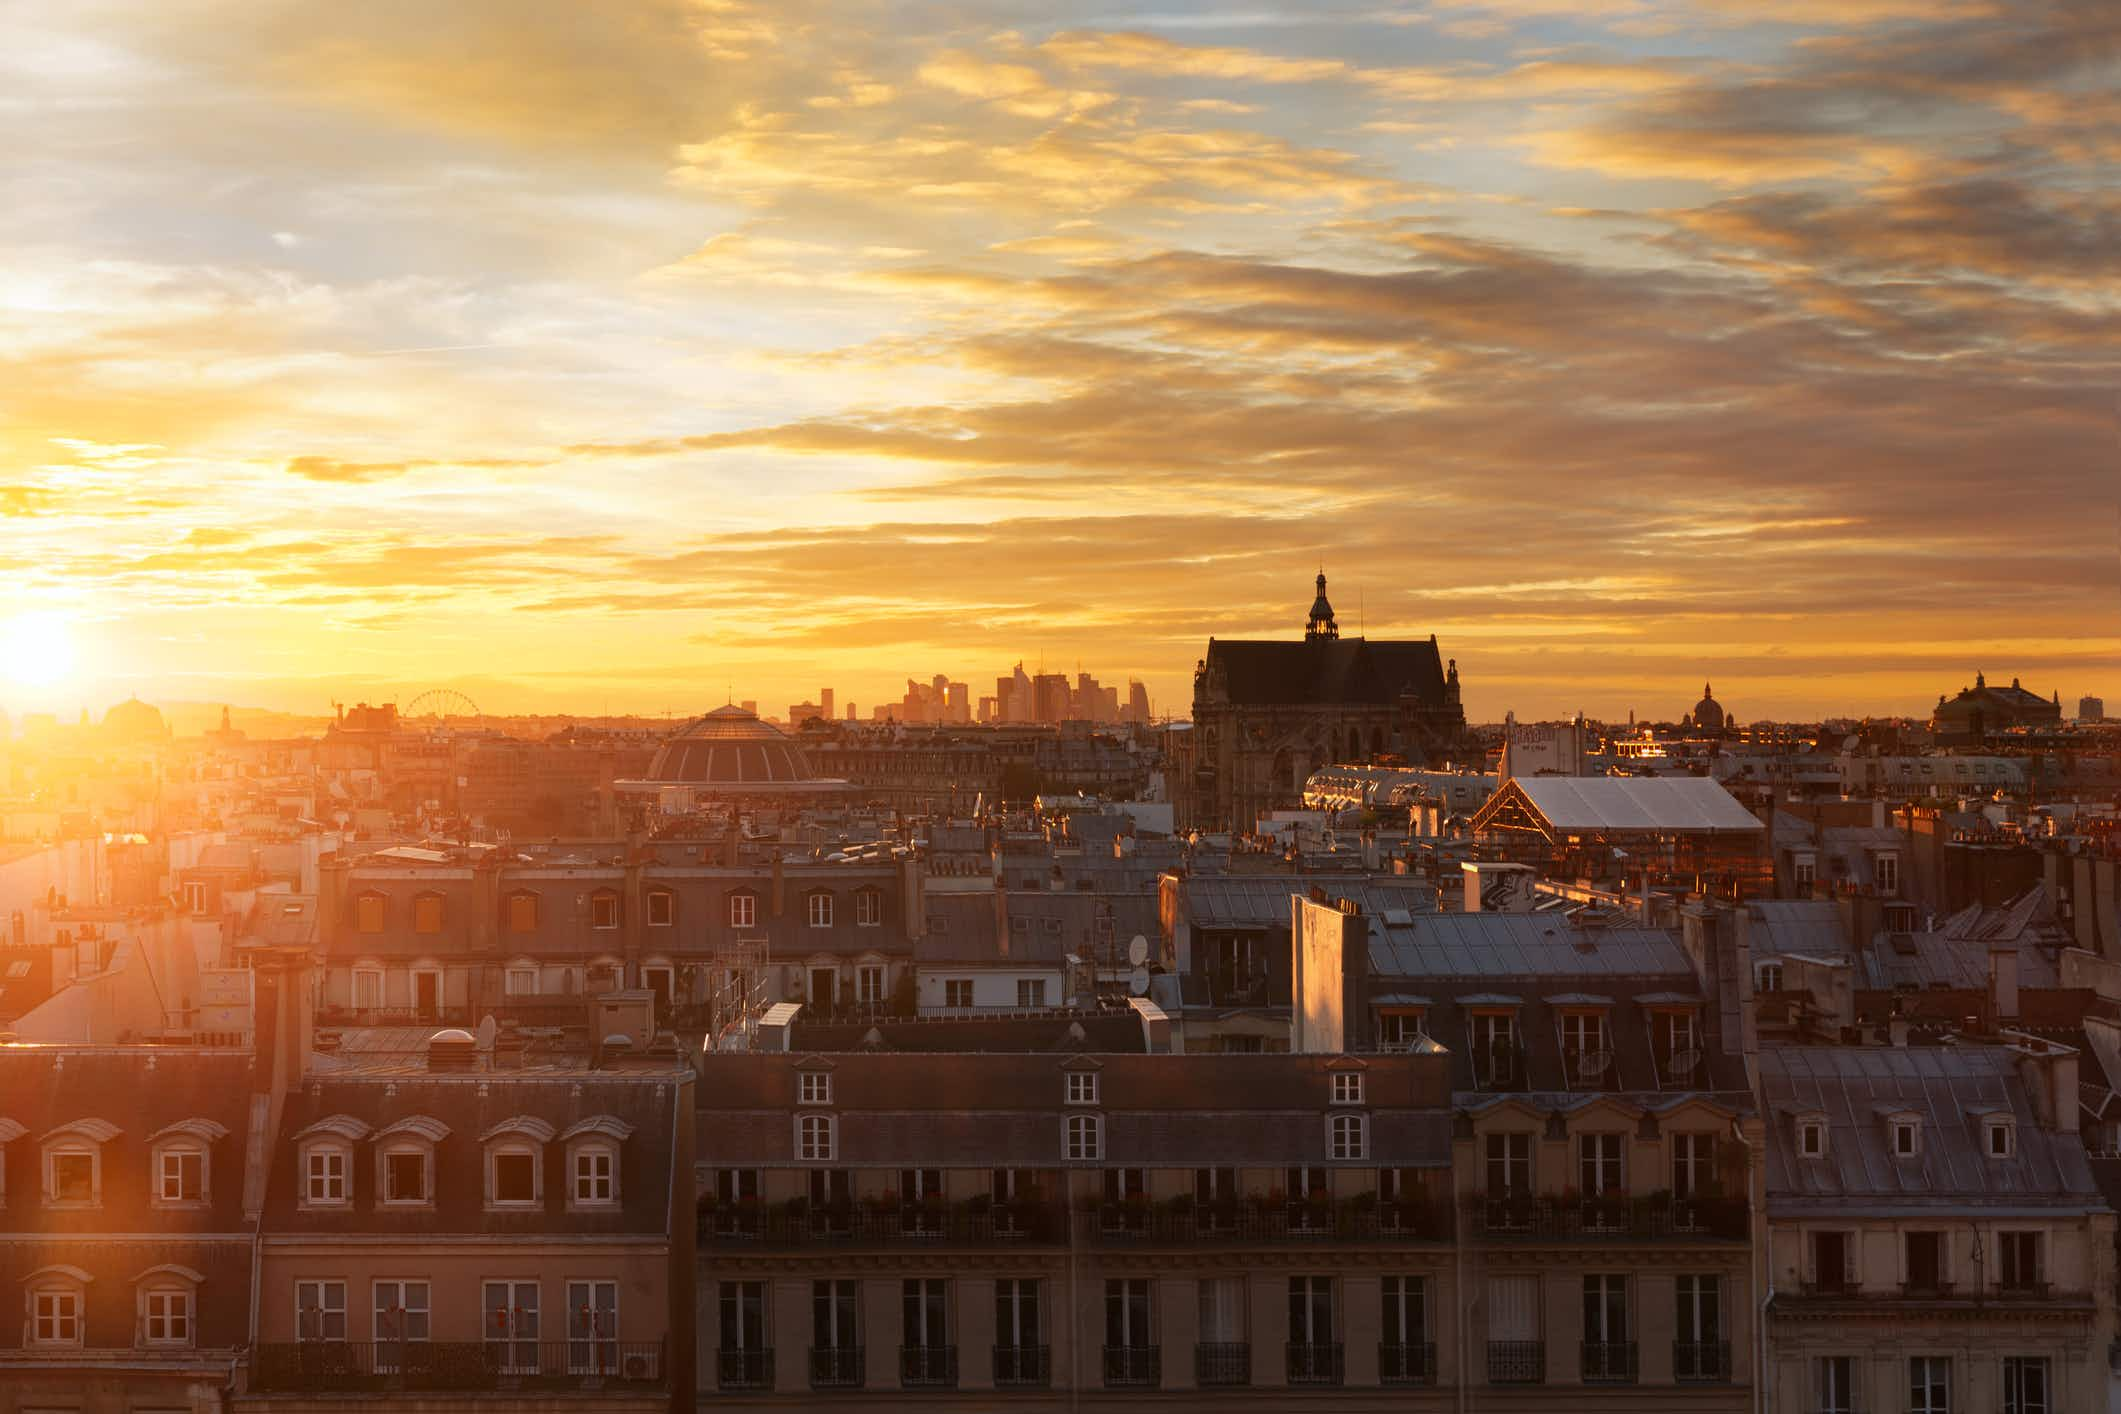 Paris wants its beautiful rooftops with specialised craftsmanship to have Unesco World Heritage status